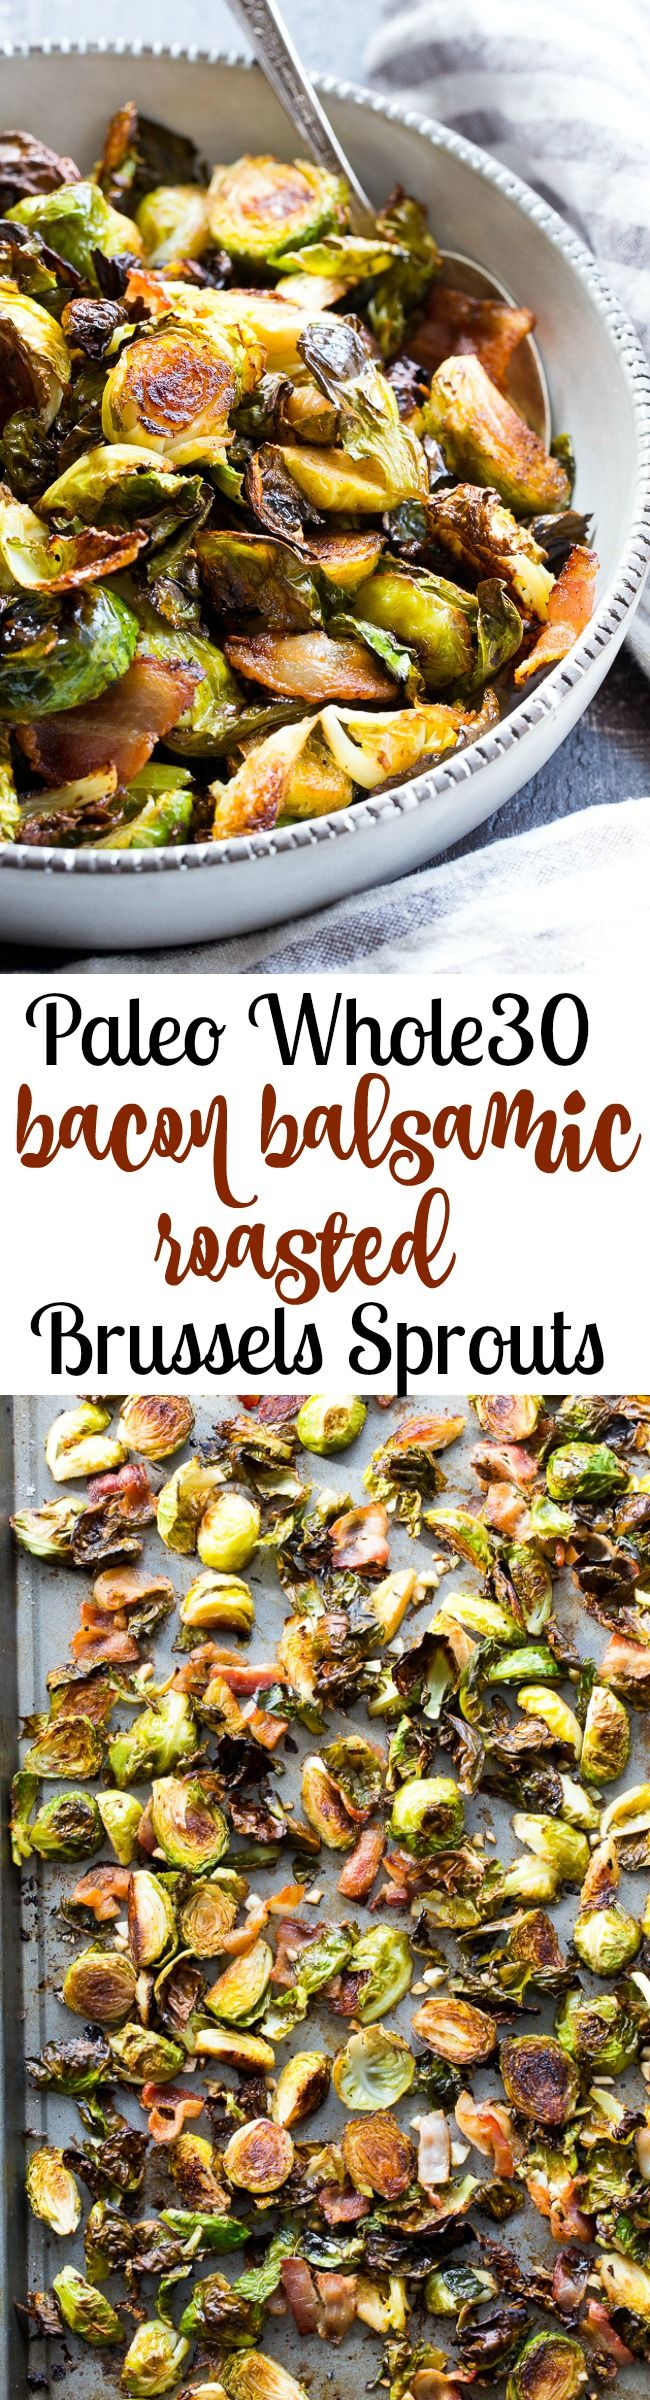 Garlic Balsamic Roasted Brussels Sprouts with Bacon {Paleo, Whole30} | The Paleo Running Momma